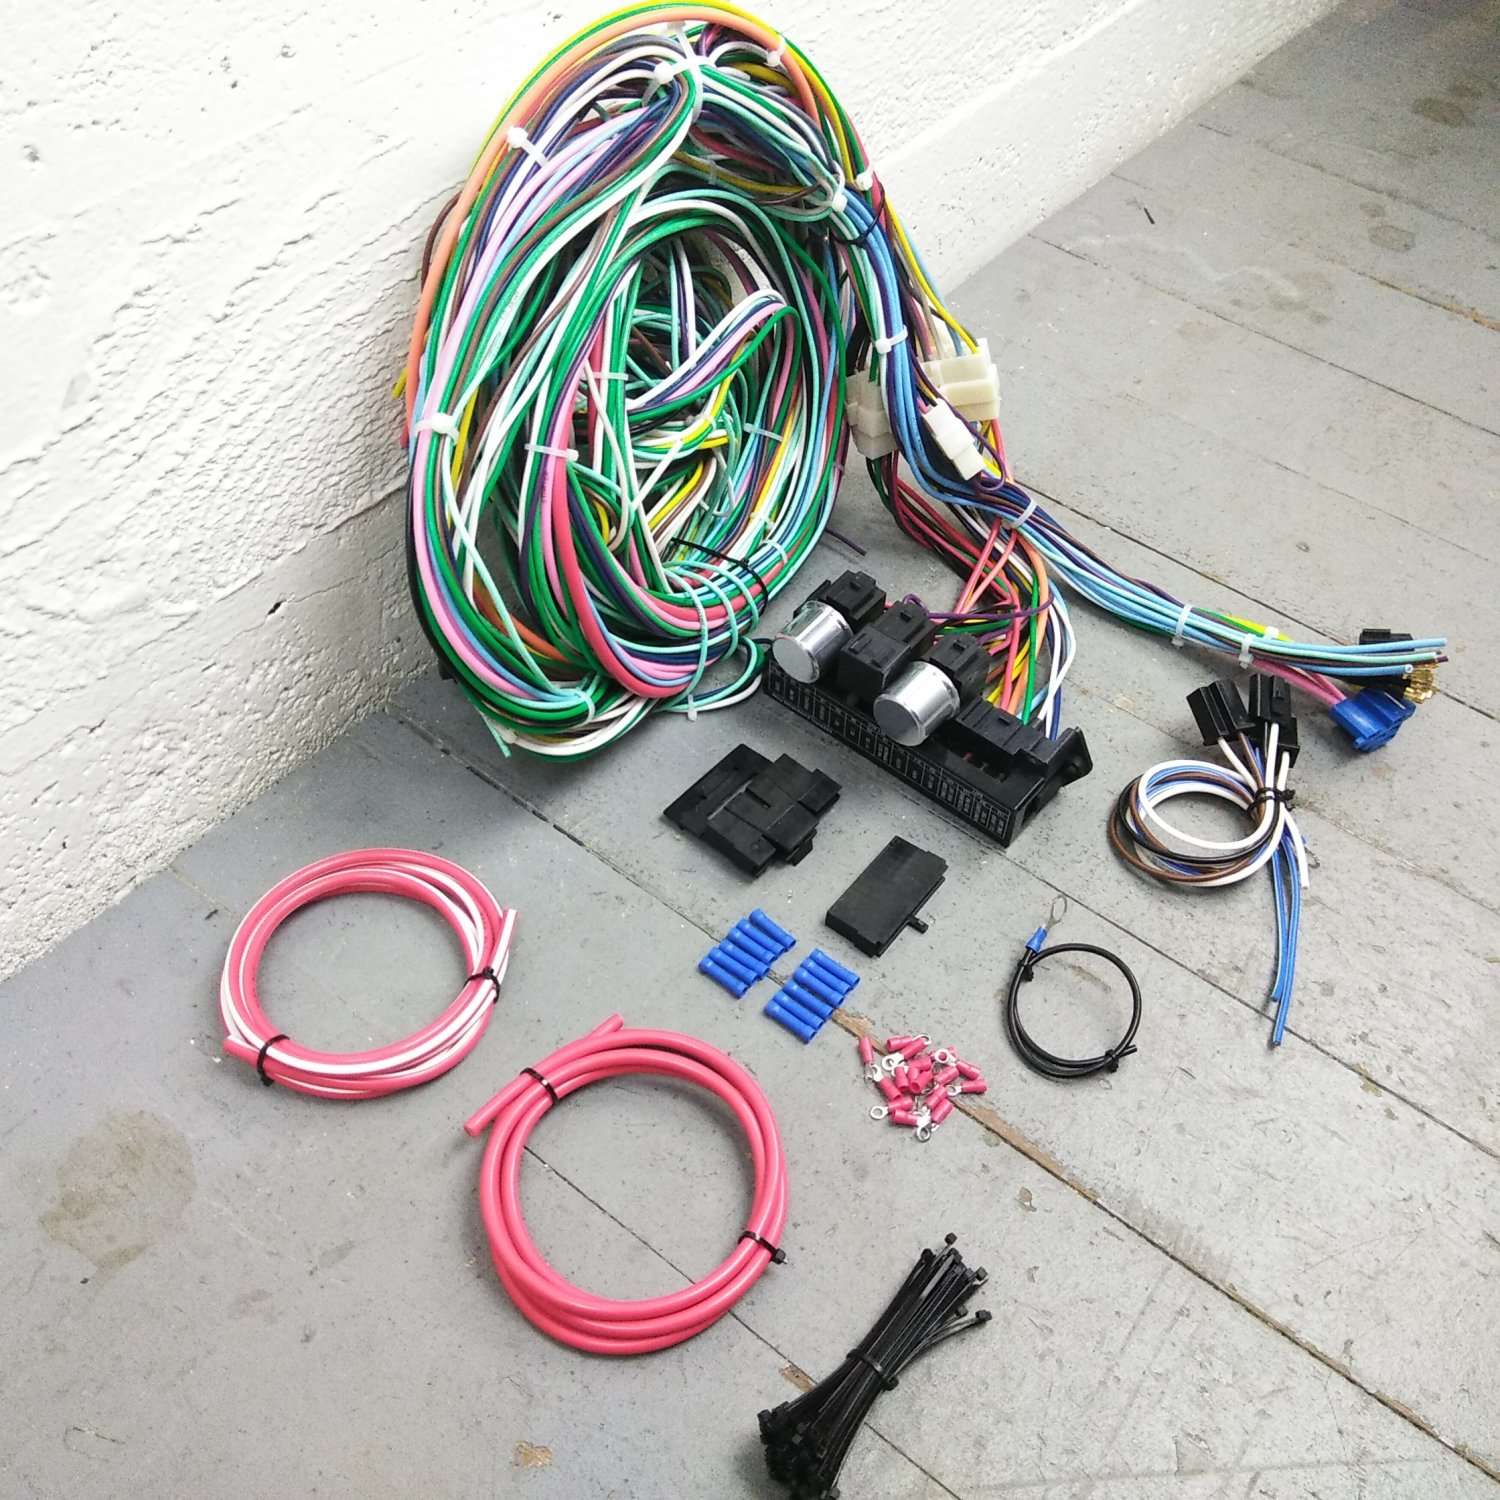 details about 1969 camaro wire harness upgrade kit fits painless compact update fuse block kic 1968 1969 camaro glass fuse series